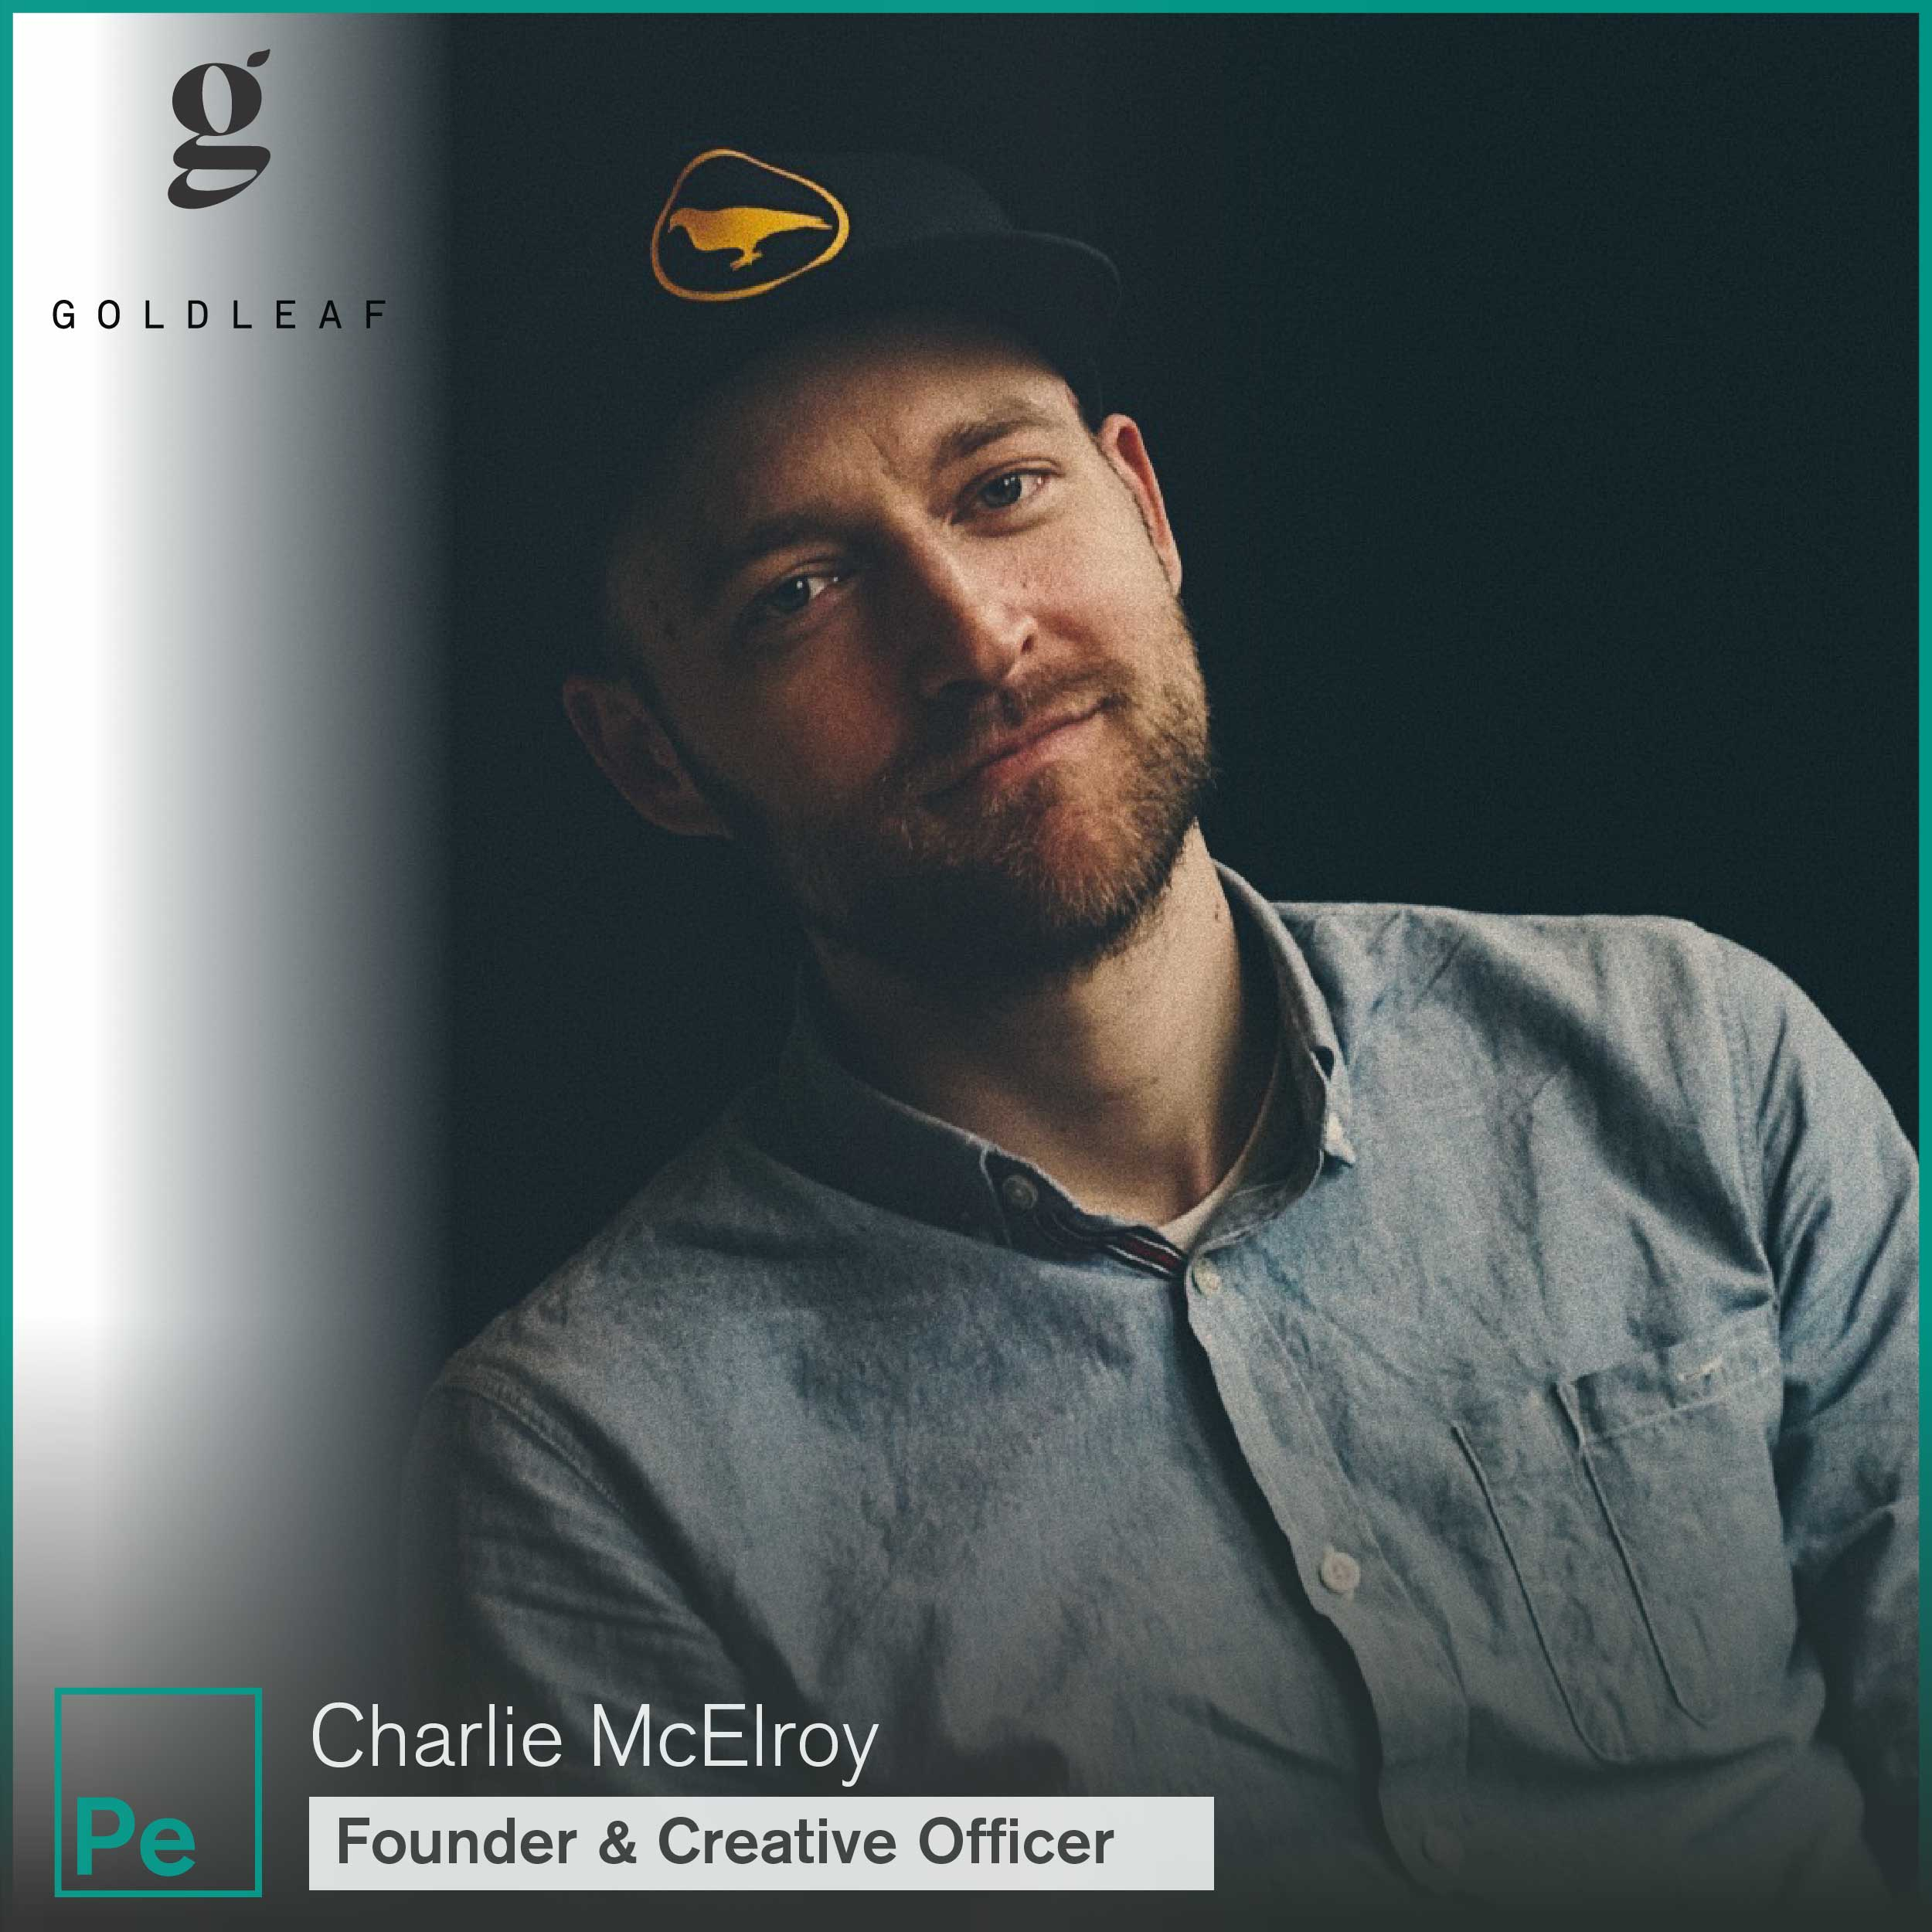 Charlie McElroy, Founder and Creative Officer of Gold Leaf, a cannabis design and science company